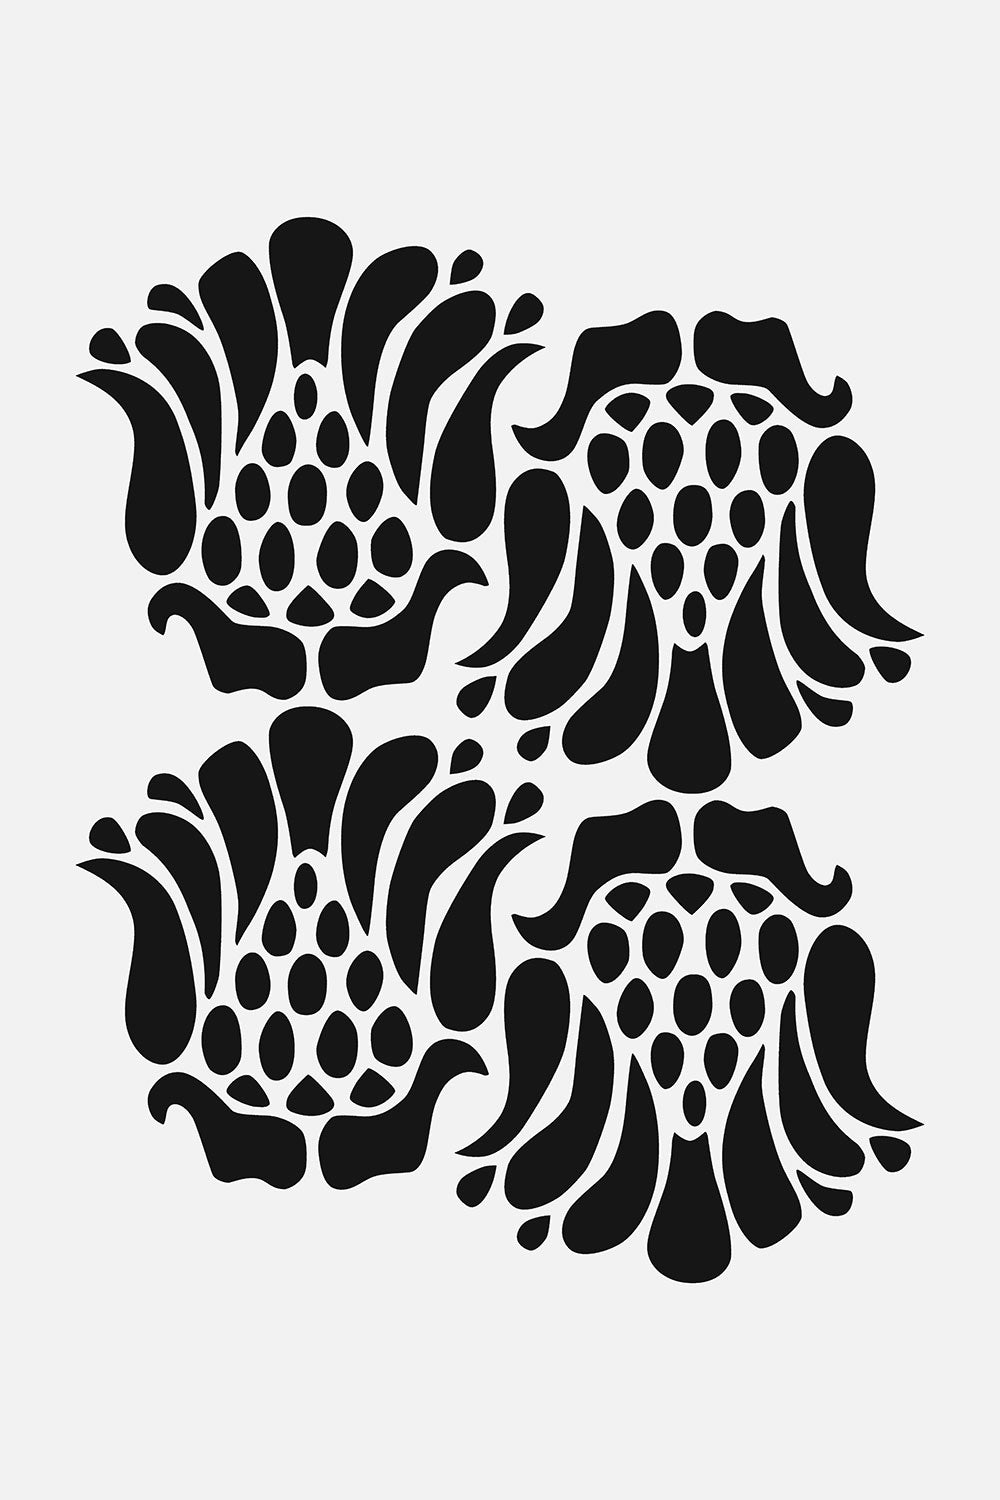 The School of Making Marie Stencil Floral Stencil Design for Hand-Painted Clothing Projects in Black and White